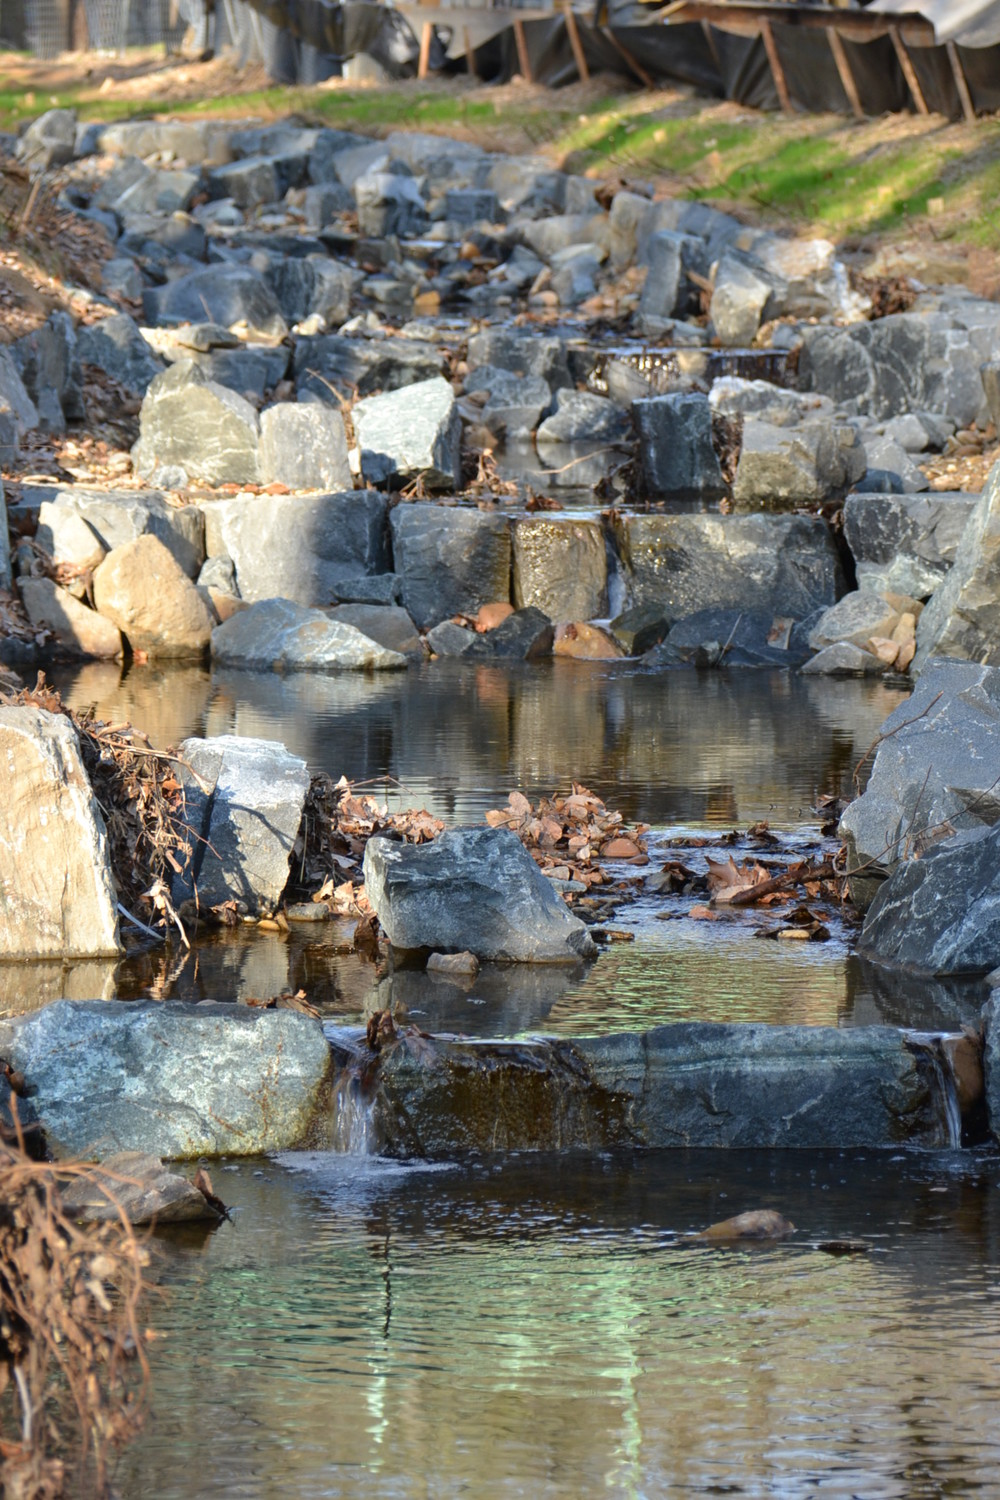 Water flow velocity is greatly reduced in the new step pools, which will reduce erosion